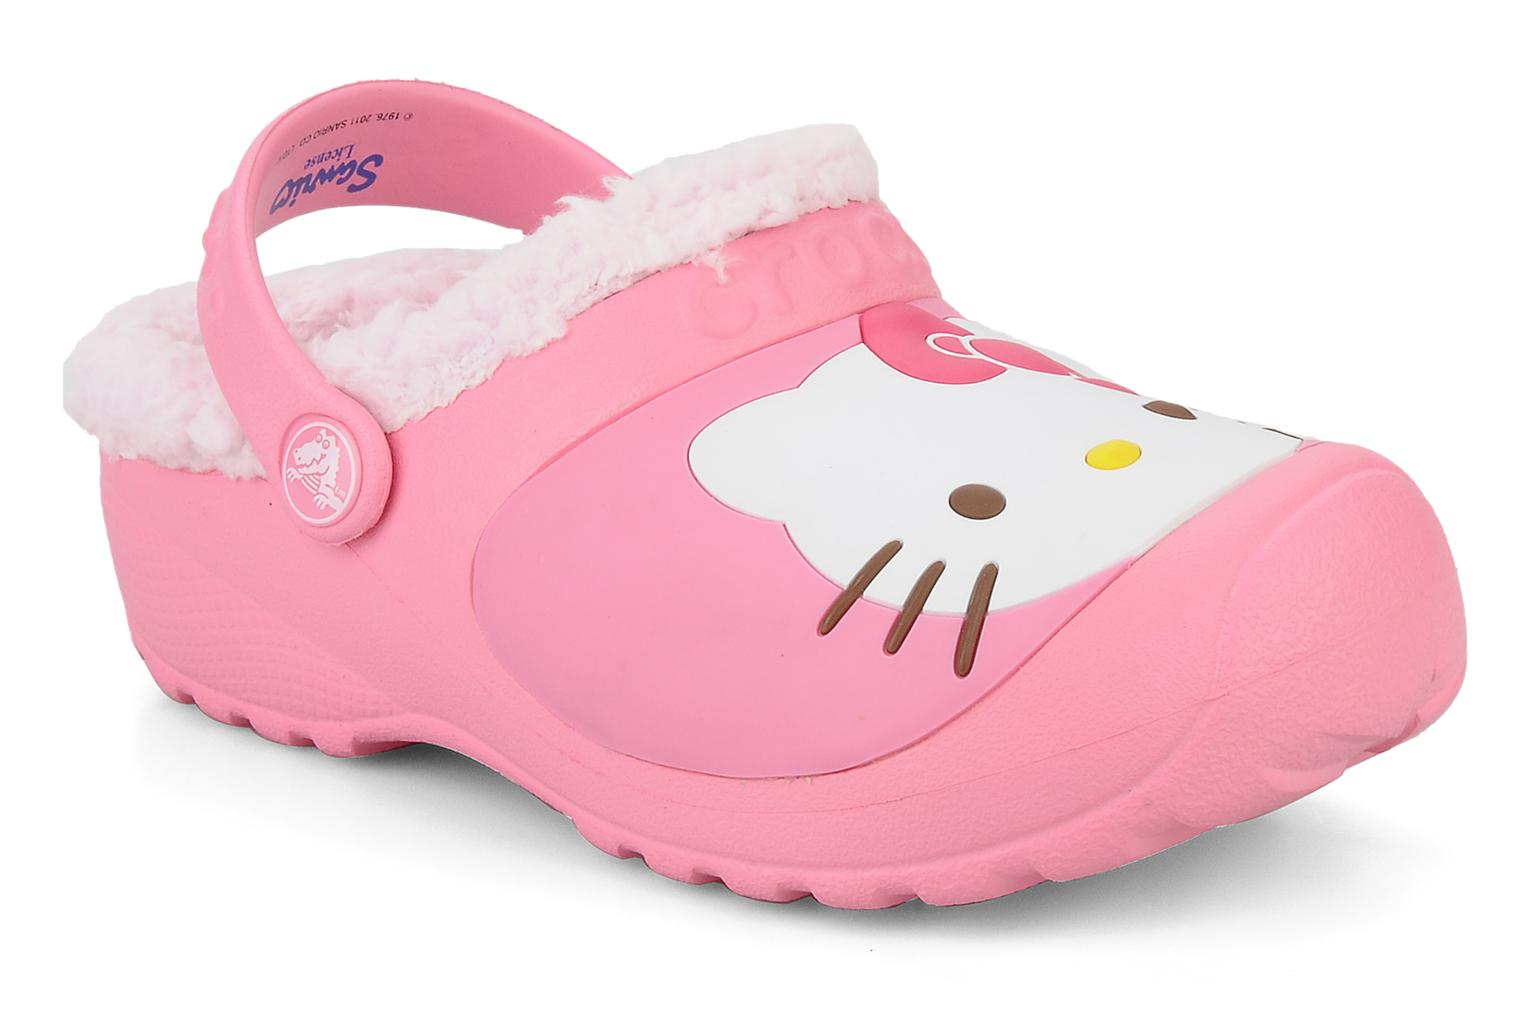 Crocs Hello kitty lined custom clog Sandals in Pink at Sarenza co uk (65176)